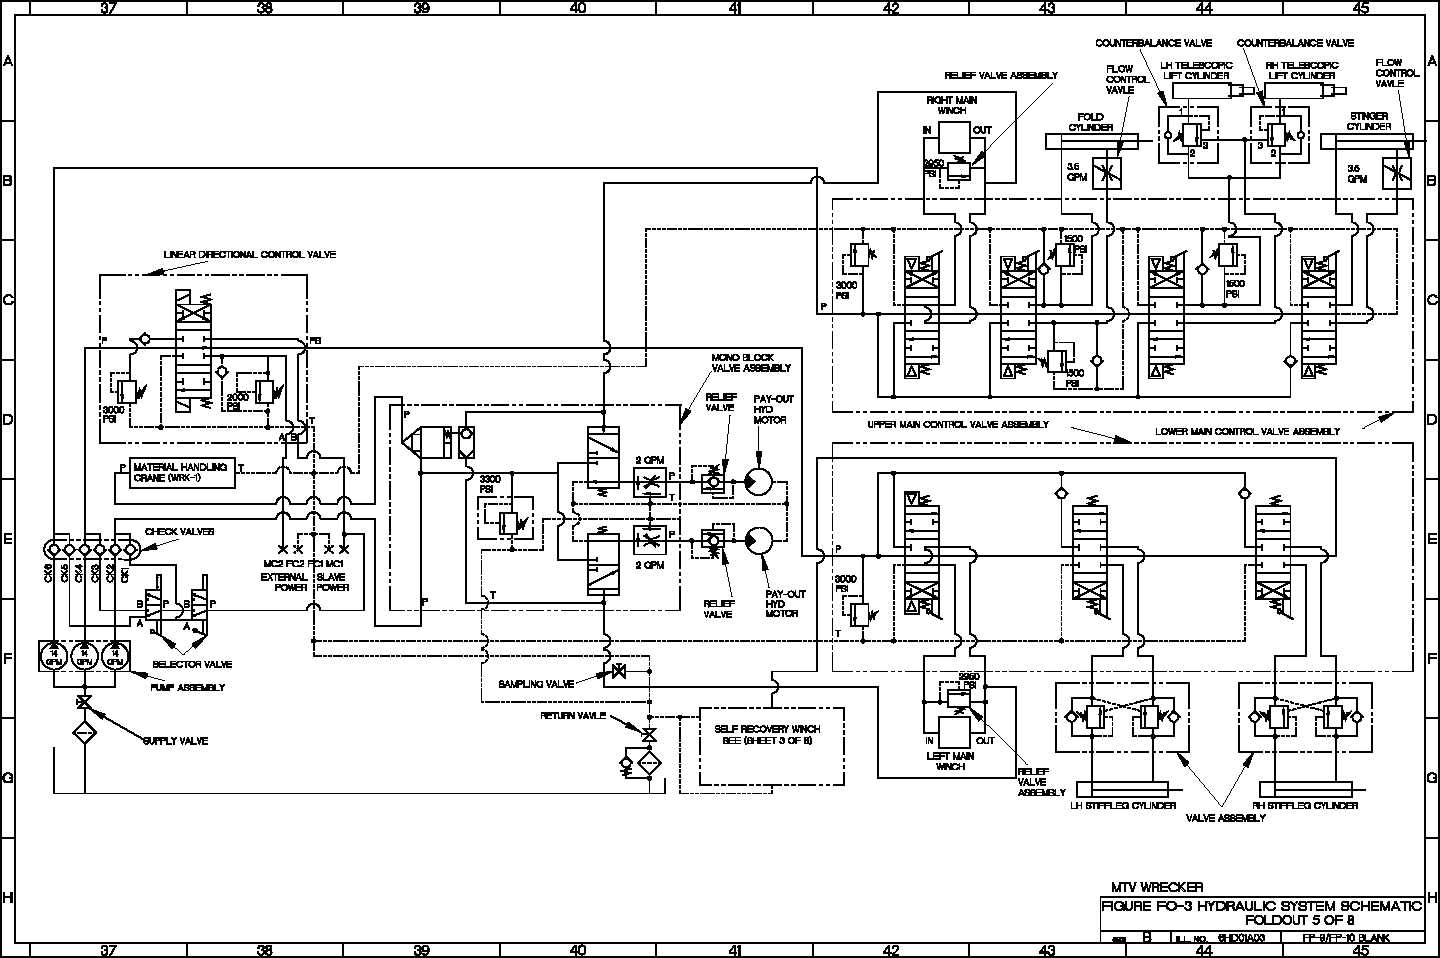 Figure Fo 3 Hydraulic System Schematic Foldout 5 Of 8 Tm 9 2320 Wiring Schematics 366 34 4 677